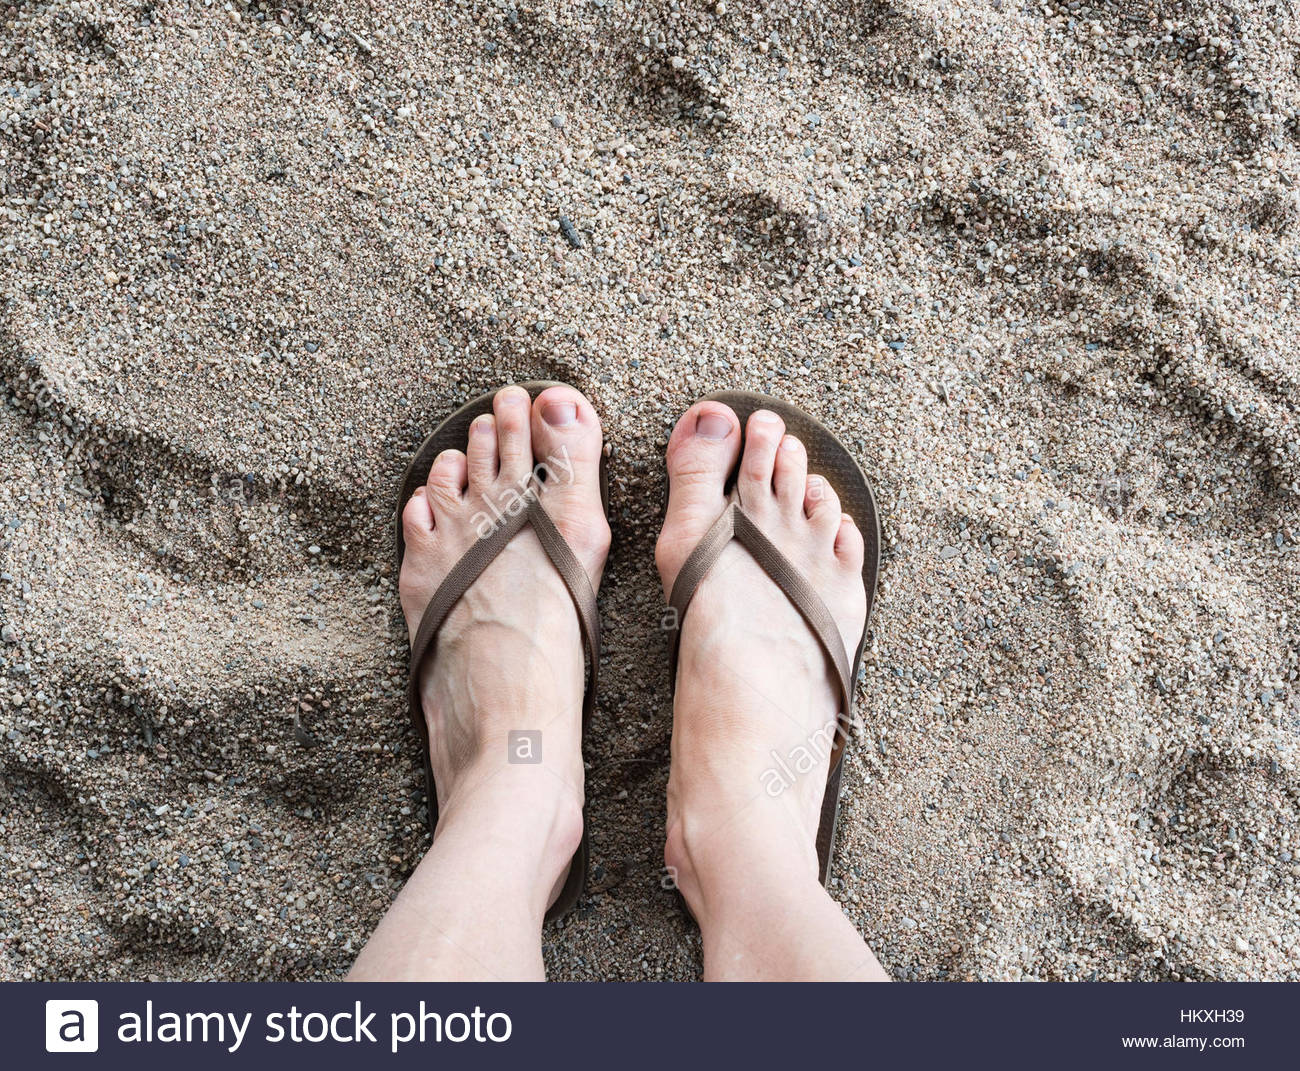 d57871baea3a4 High angle view of middle aged woman s feet in thongs on grainy sand - Stock  Image